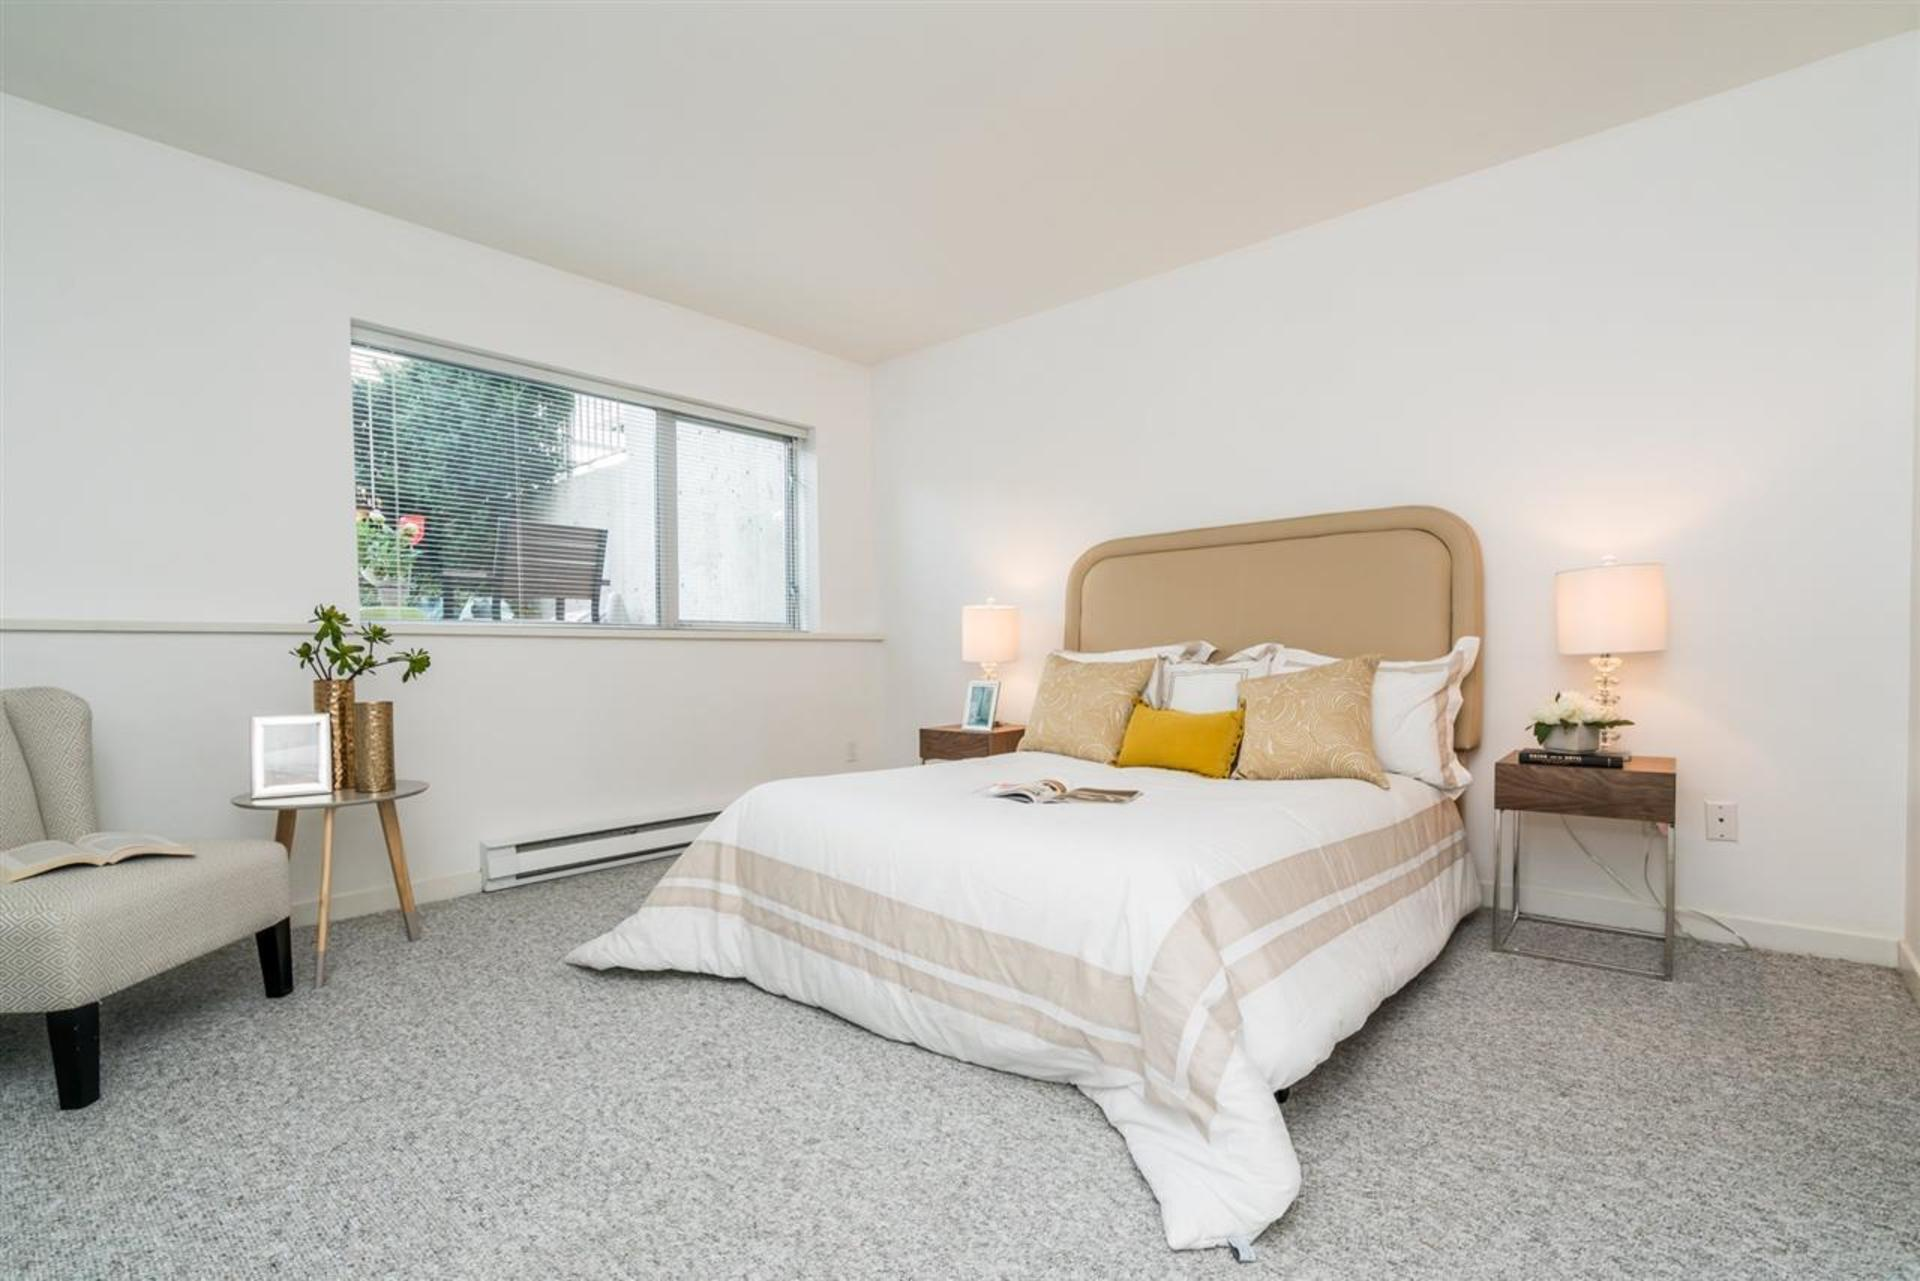 1288-chesterfield-avenue-central-lonsdale-north-vancouver-12 at TH3 - 1288 Chesterfield Avenue, Central Lonsdale, North Vancouver